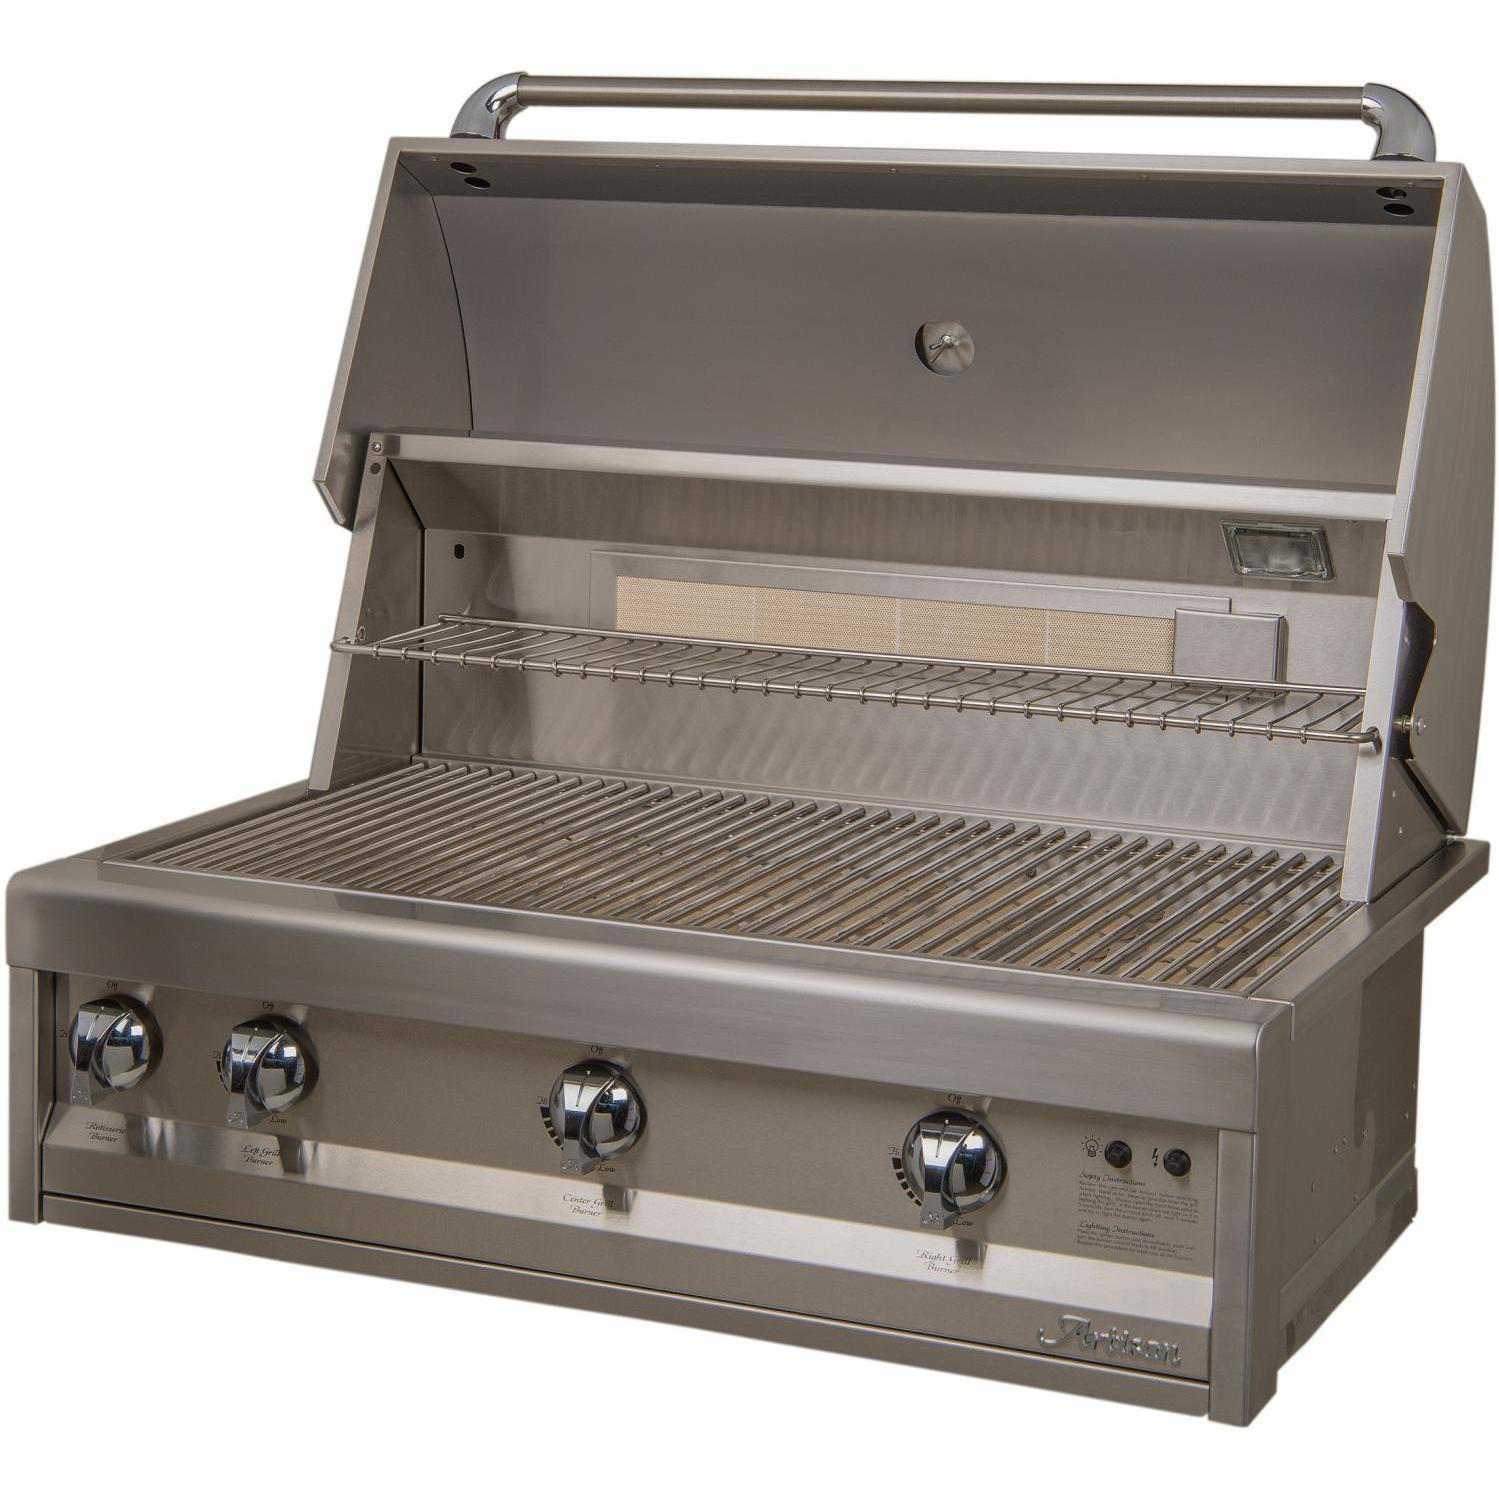 The 7 Best Gas Grill Inserts Under $4,000 of 2019